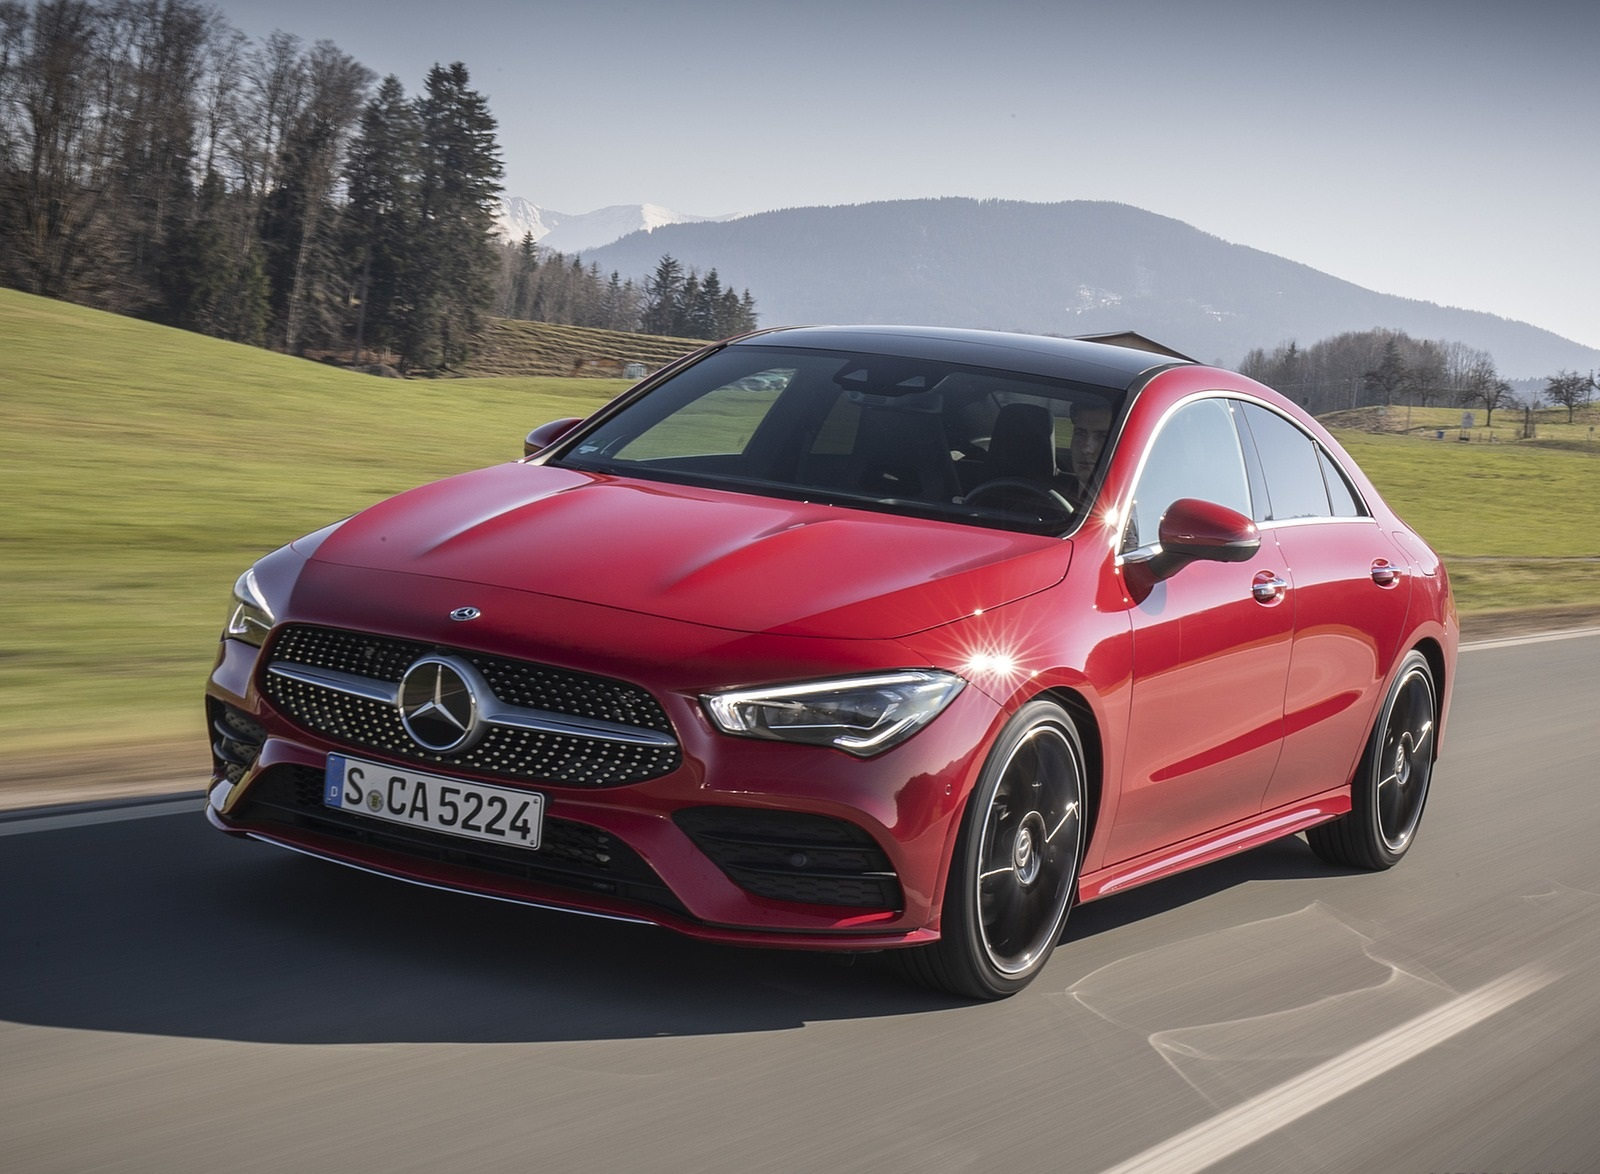 2020 Mercedes-Benz CLA 250 4MATIC Coupe AMG Line (Color: Jupiter Red) Front Three-Quarter Wallpapers (3)